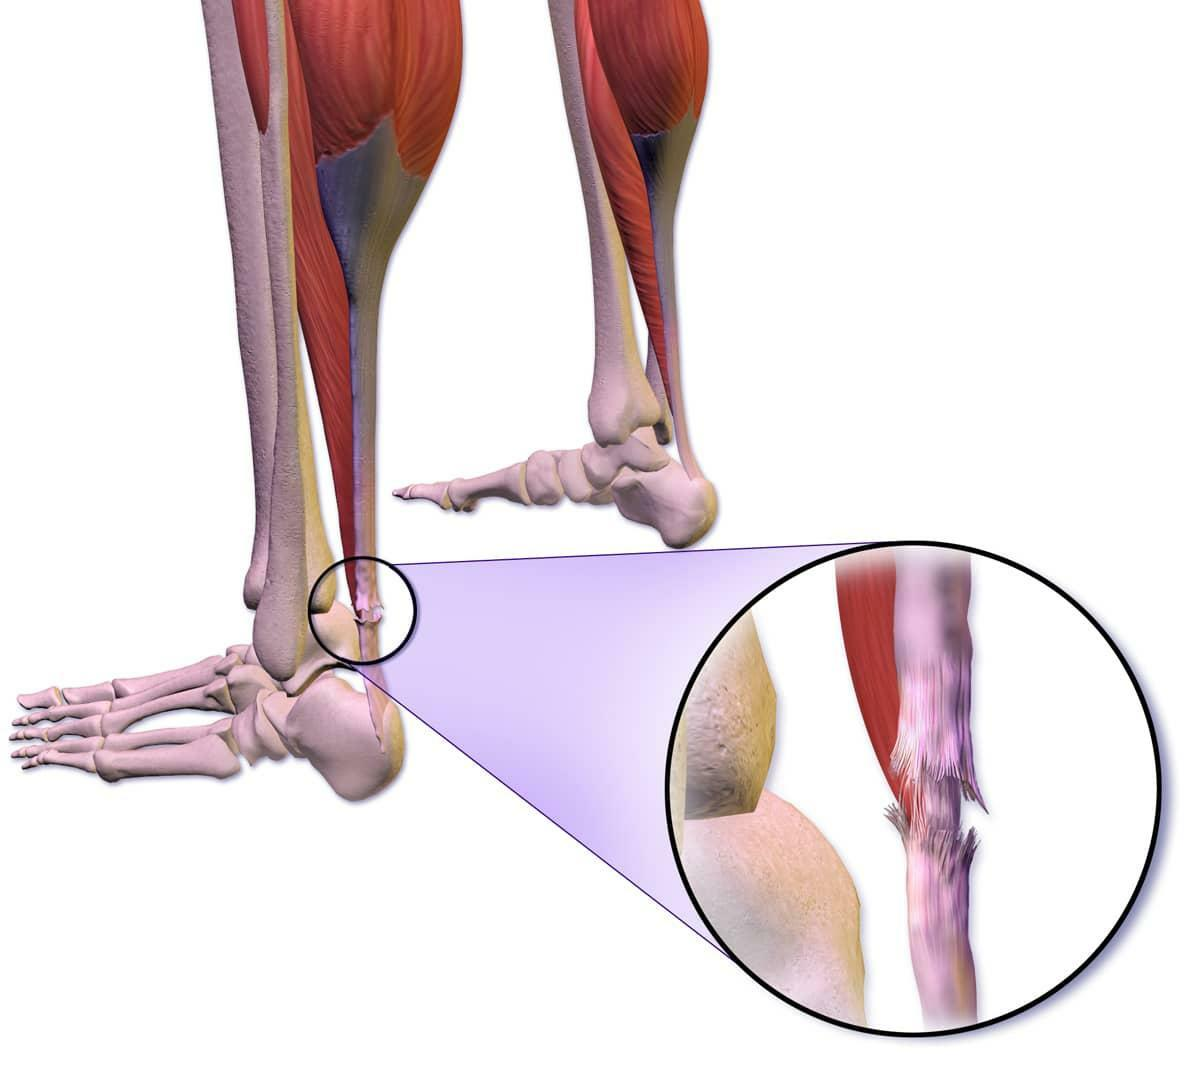 Anatomy of the Achilles Tendon causing pain.